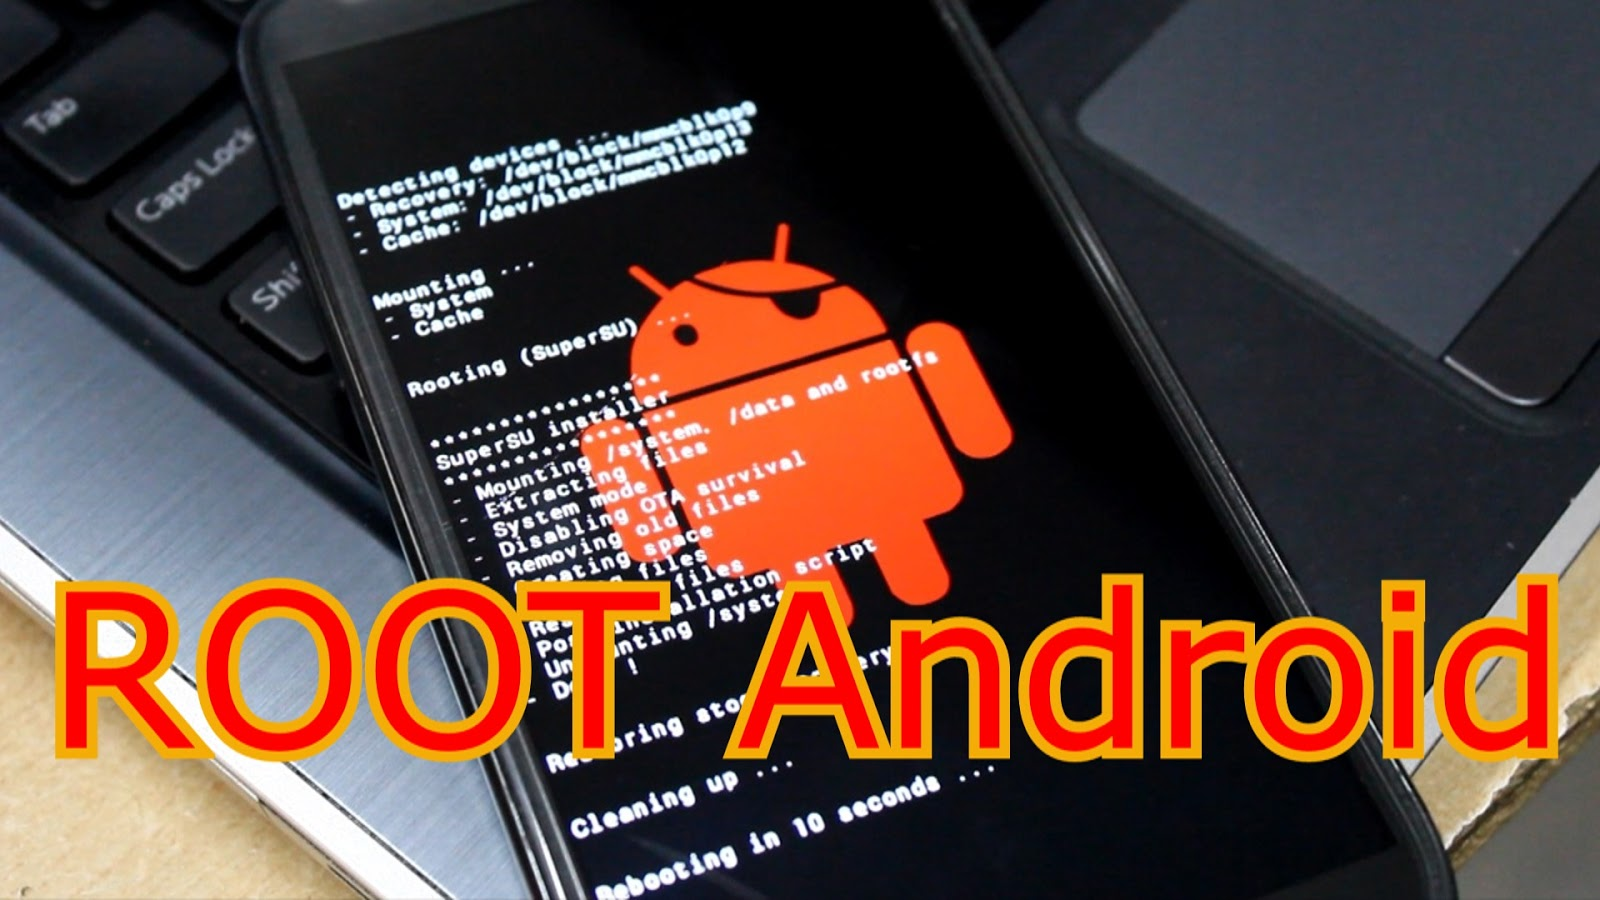 Root android by just one single click 100% working (Proof added)